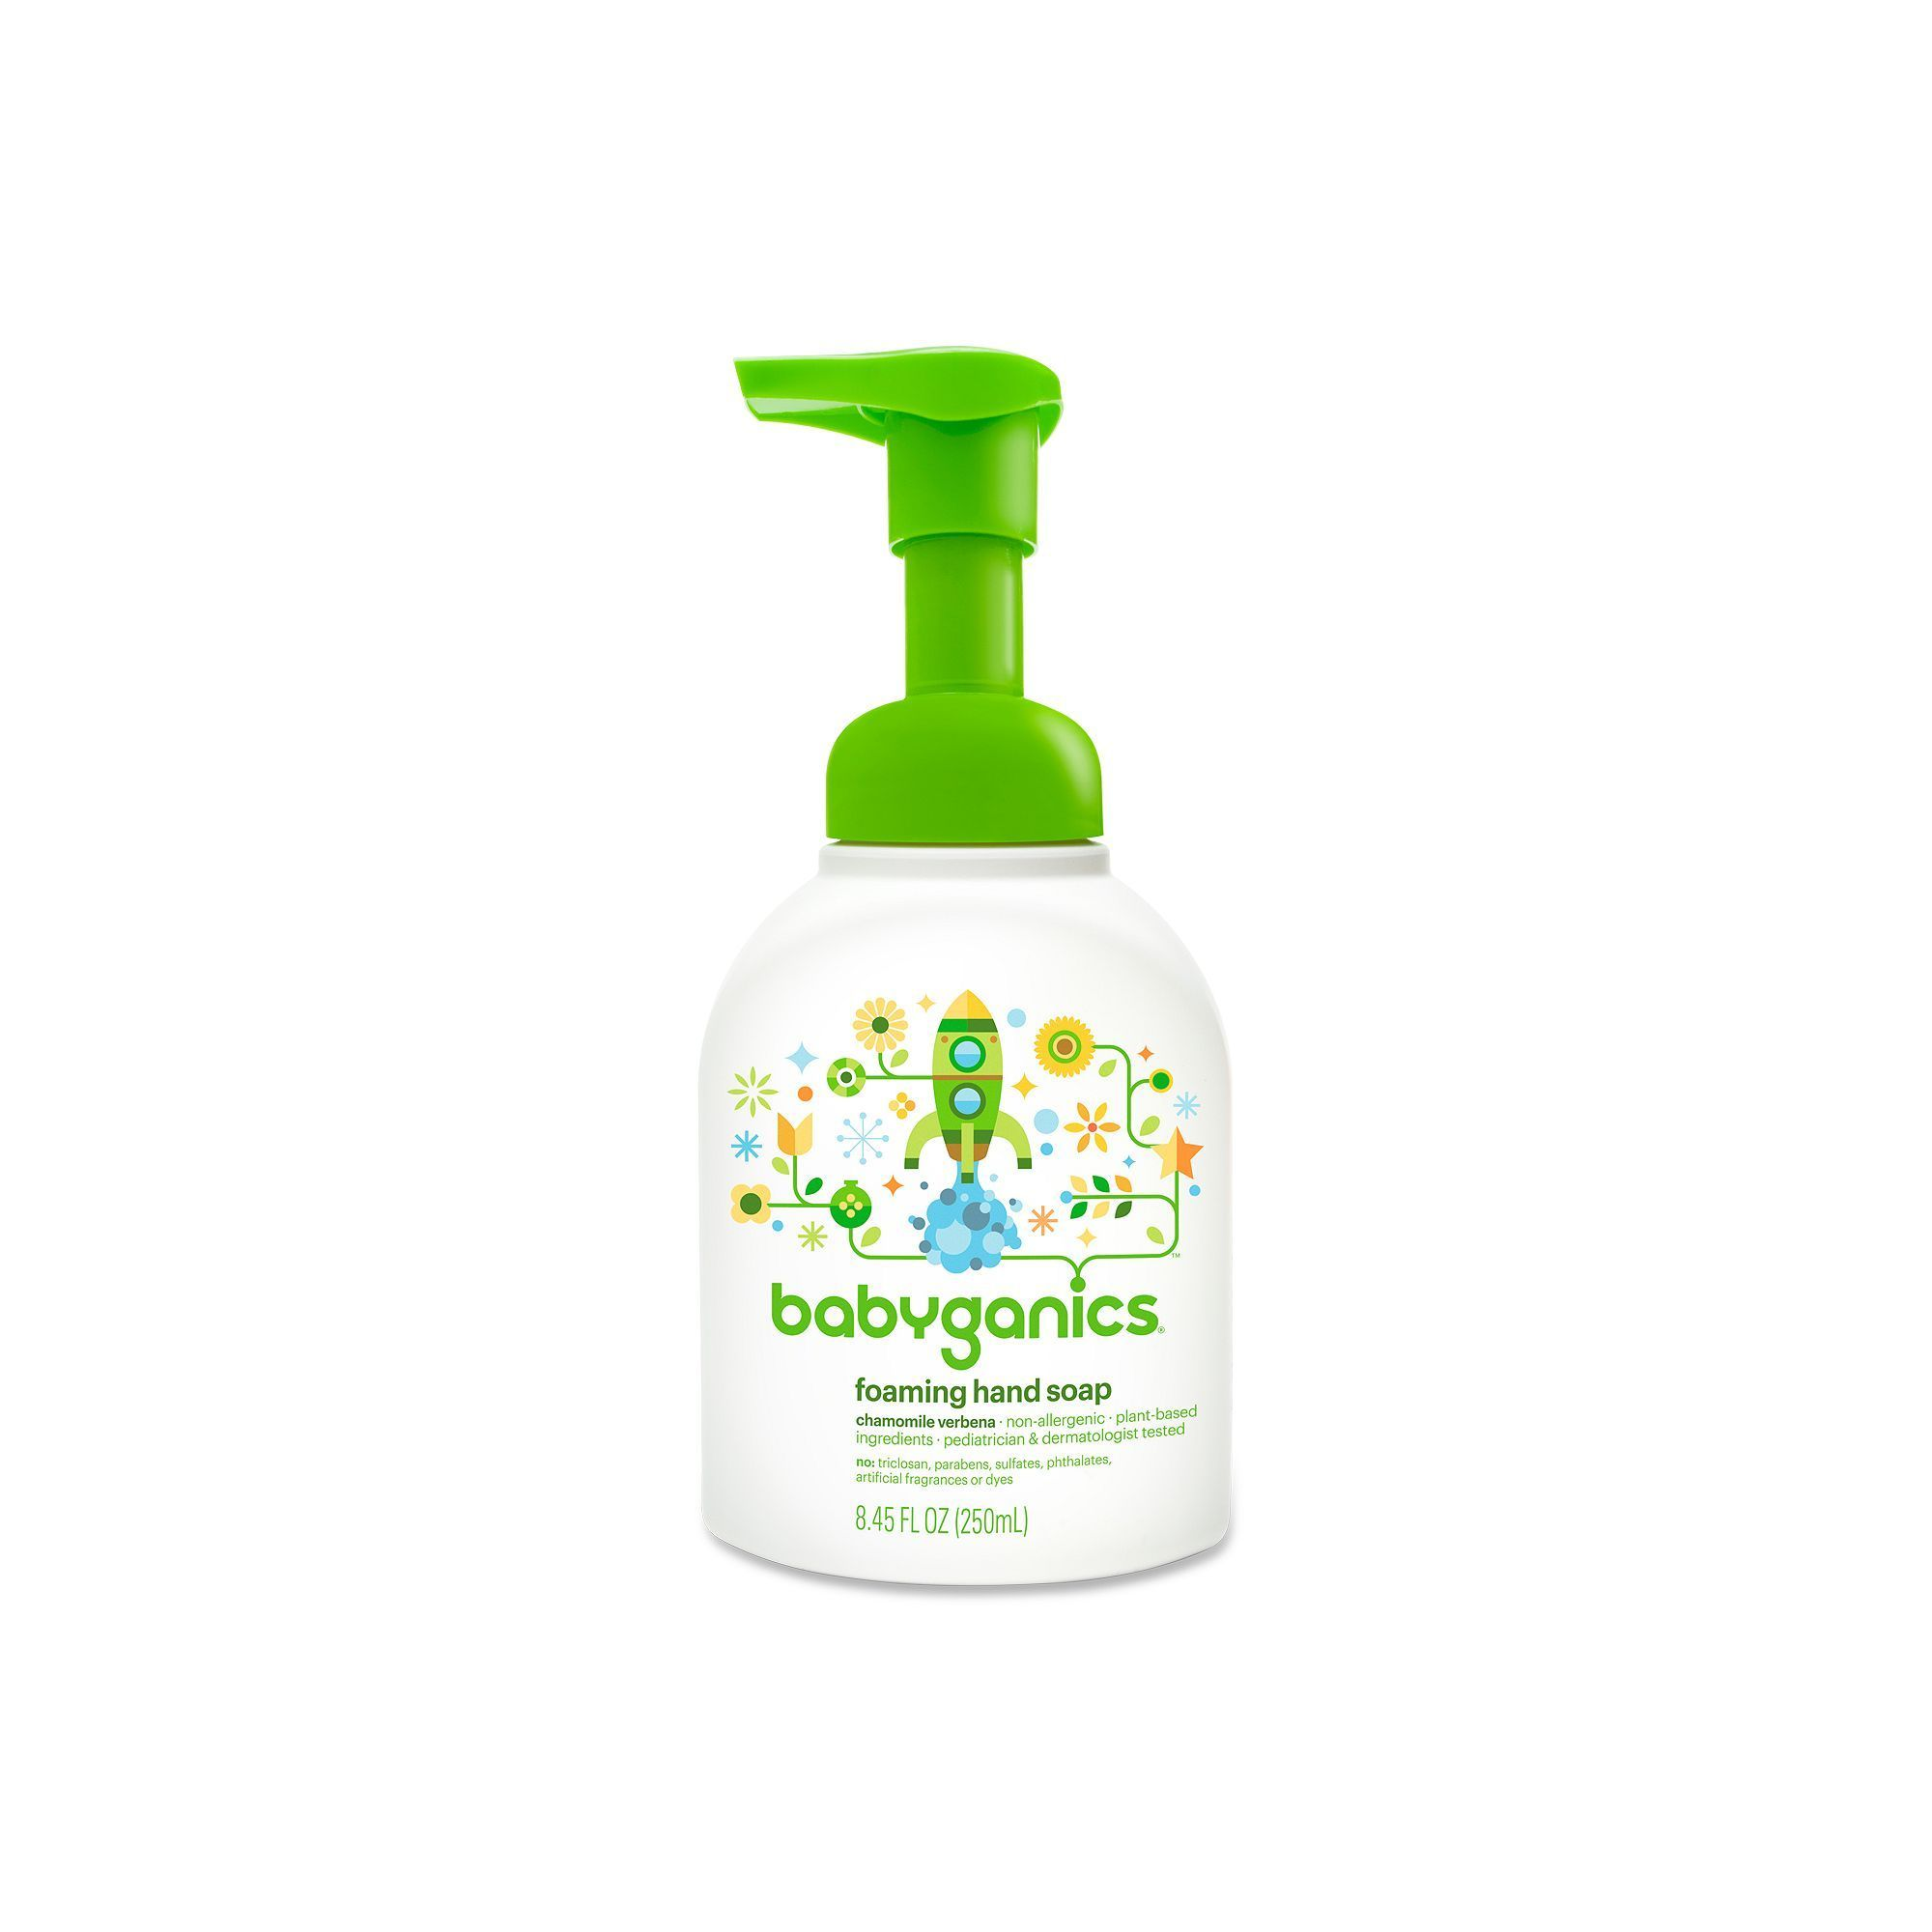 Babyganics 8 45 Oz Foaming Hand Soap Products Soap Safe Cleaning Products Hands